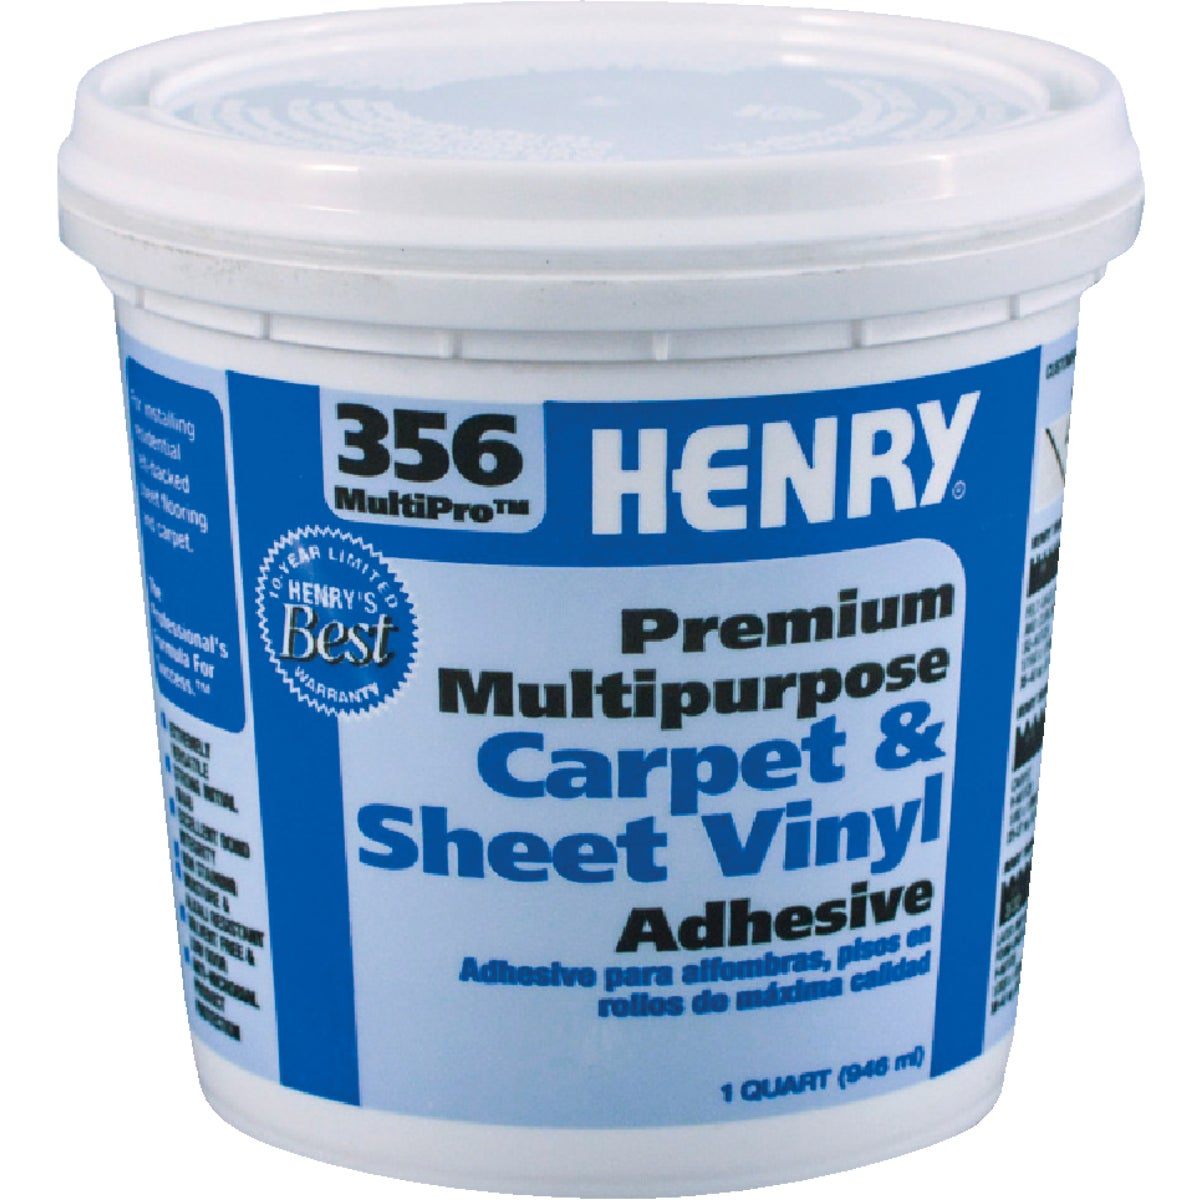 QT H356 MP FLOR ADHESIVE - 12072 by Henry W W Company